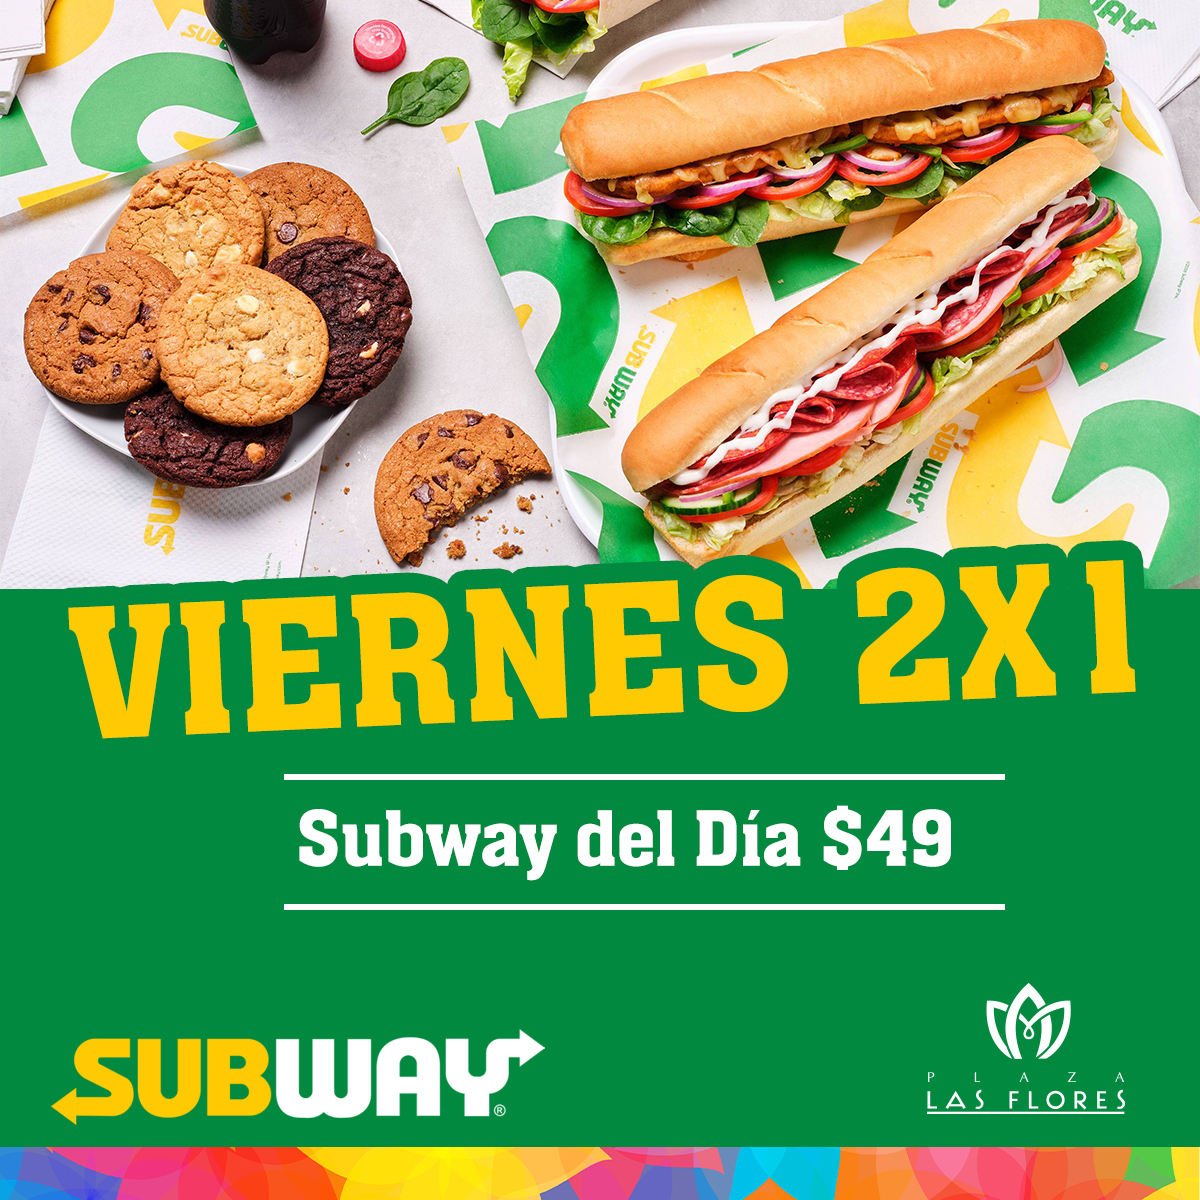 LasFlores-Ofertas-Subway copy